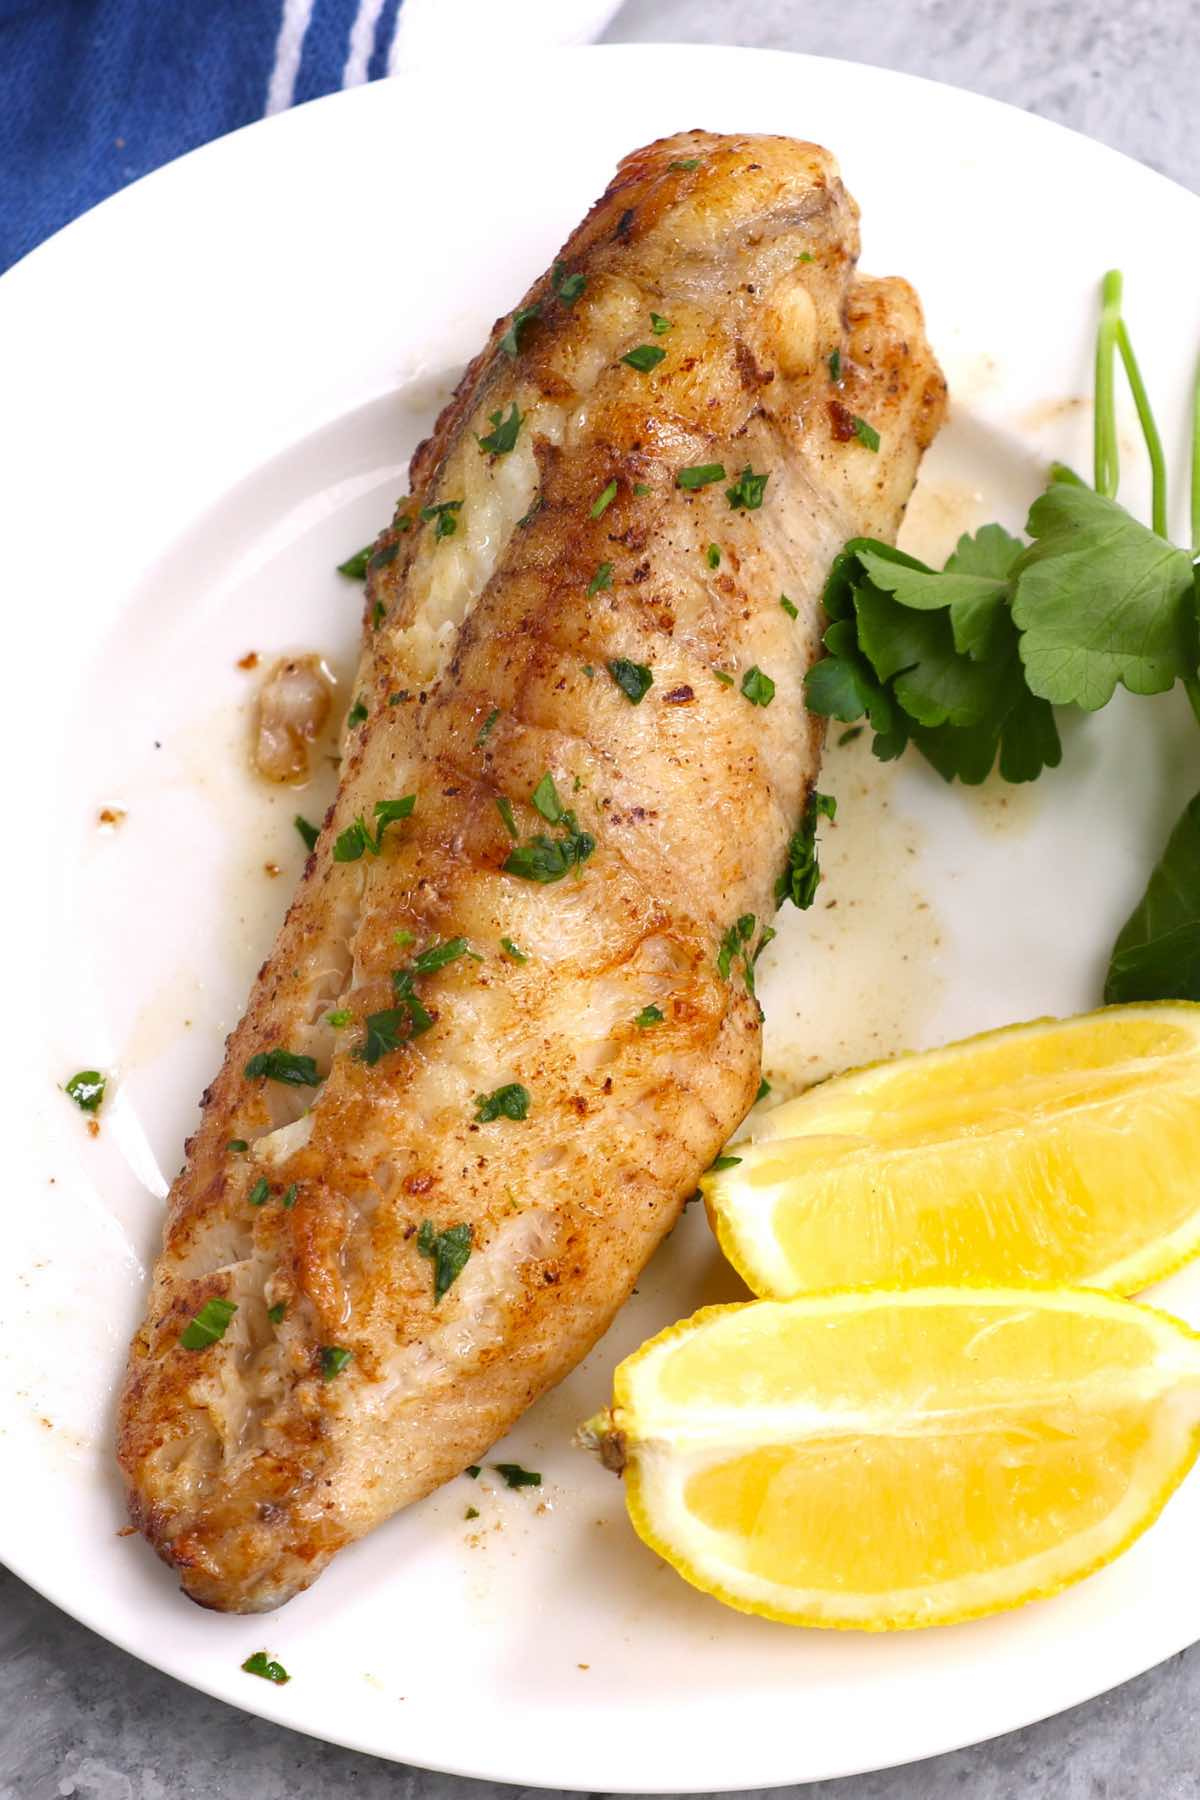 A serving of pan-seared monkfish with lemon and parsley